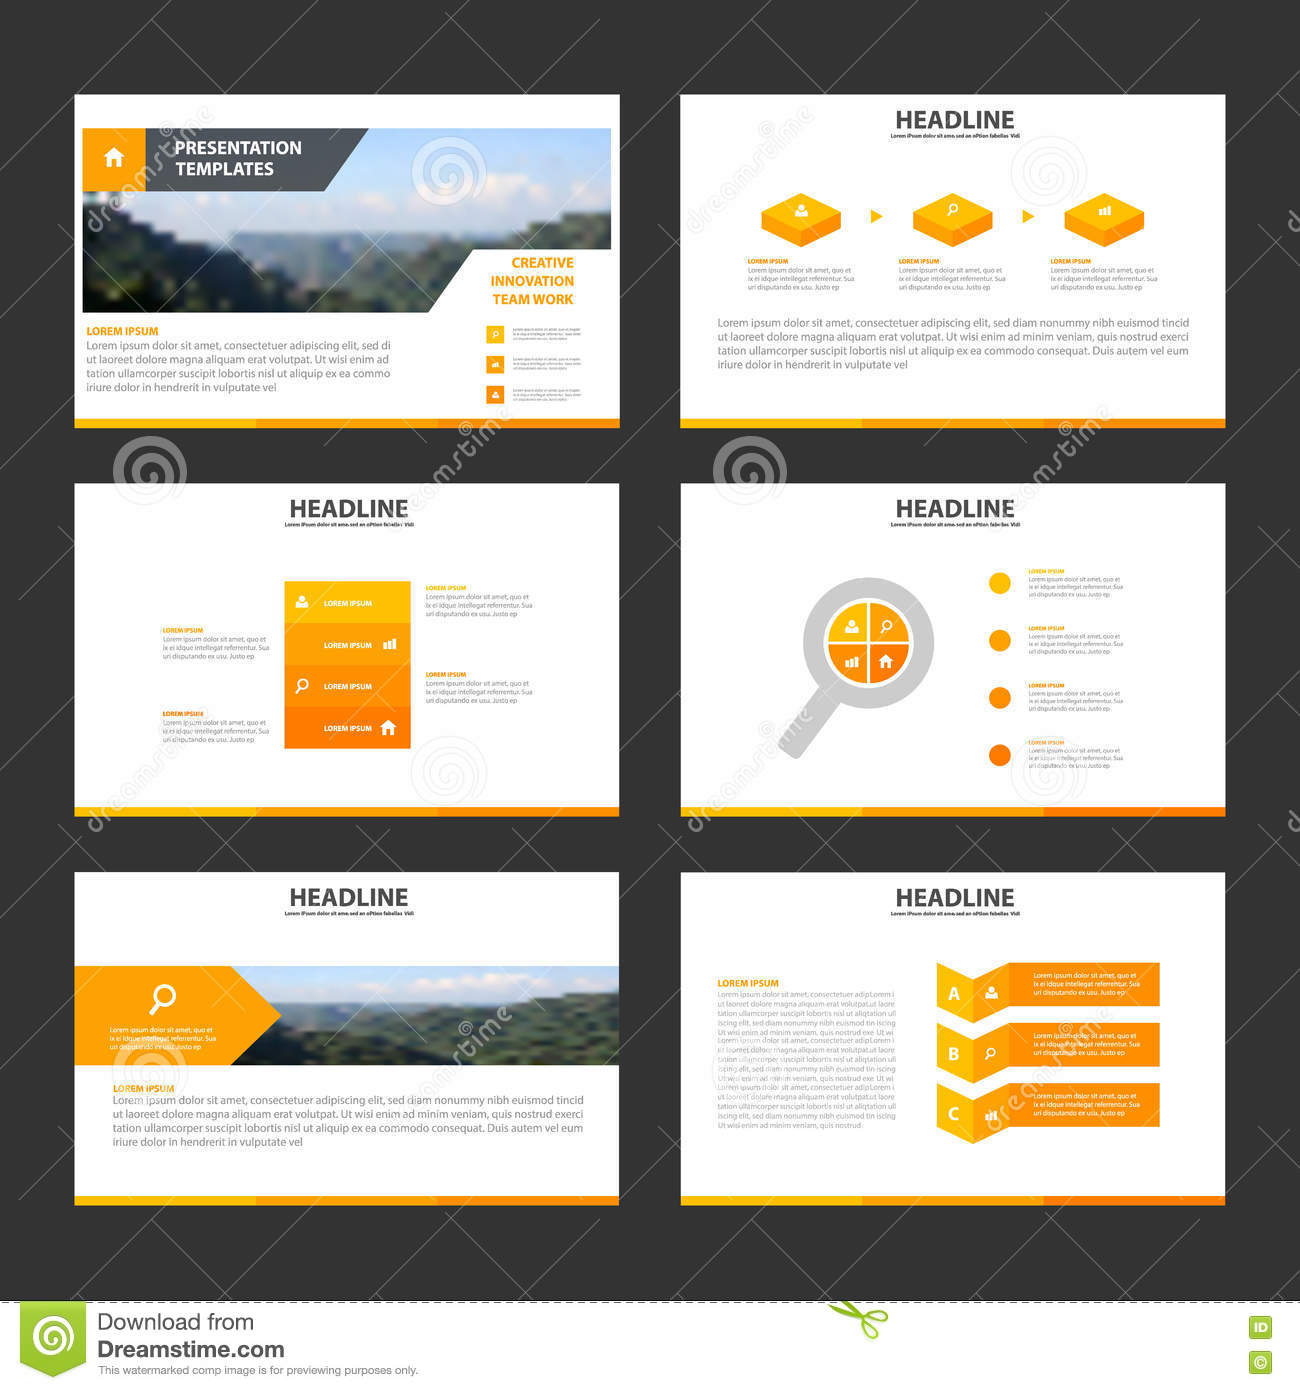 orange minimal presentation templates infographic elements flat orange minimal presentation templates infographic elements flat design set for brochure flyer leaflet marketing advertising